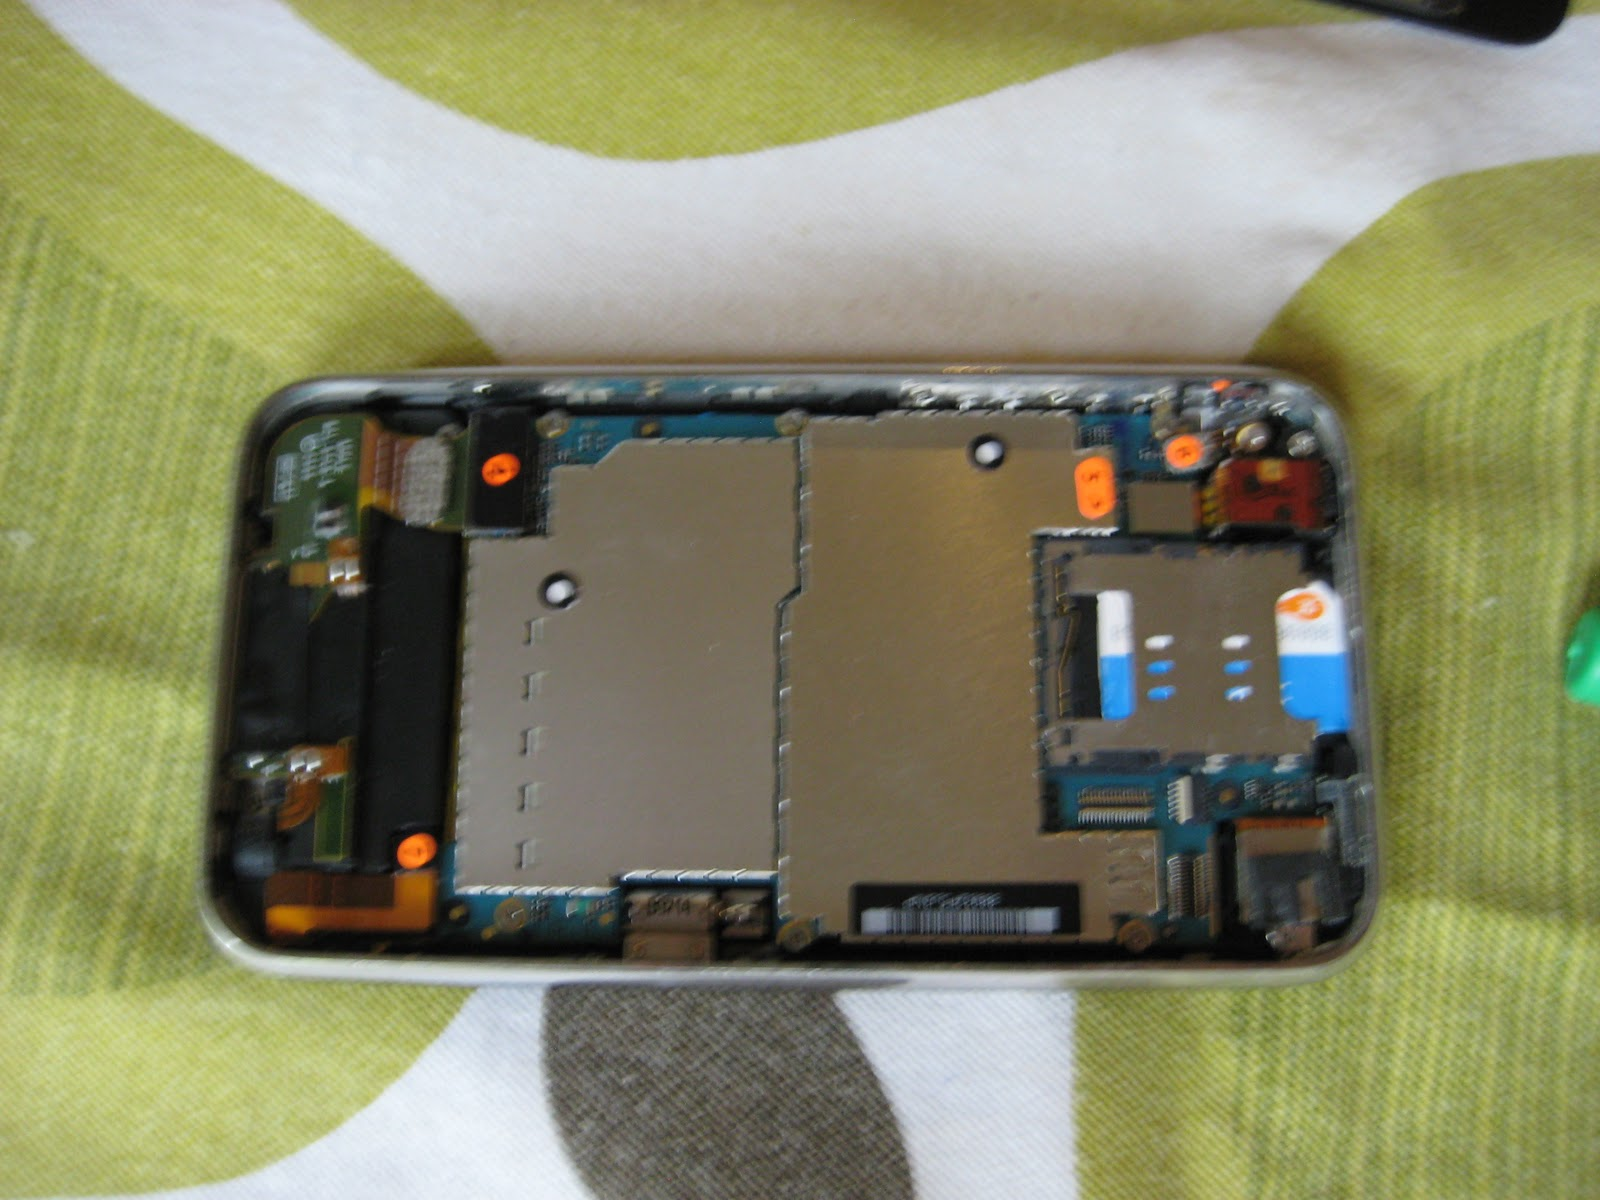 C.R.A.F.T. # 76: How To Replace A Broken/ Cracked IPhone